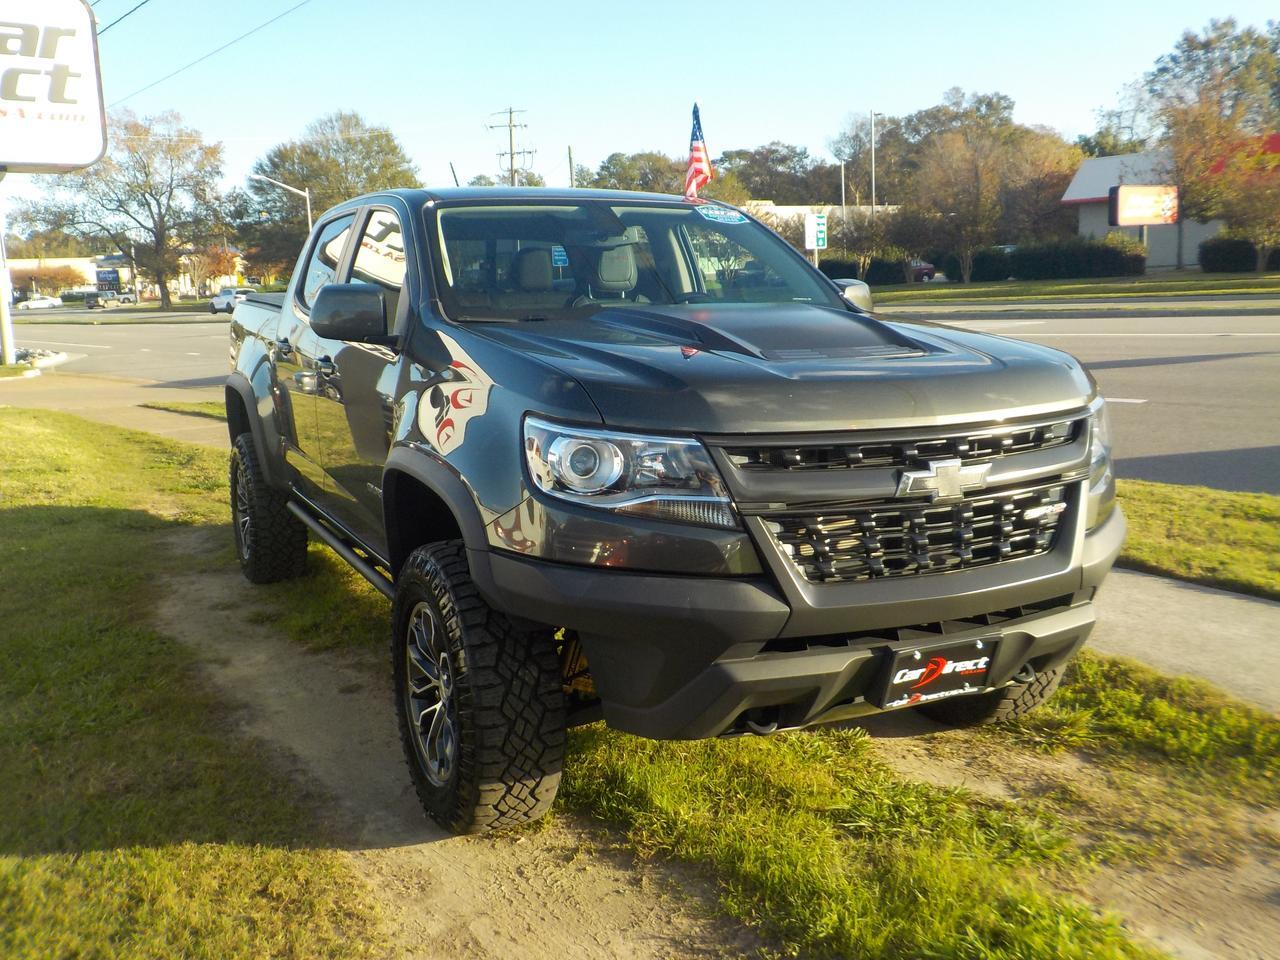 2017 CHEVROLET COLORADO ZR2 CREW CAB 4X4, ONE OWNER, LEATHER, NAVIGATION, BLUETOOTH, TOW PACKAGE, ONLY 35K MILES! Virginia Beach VA